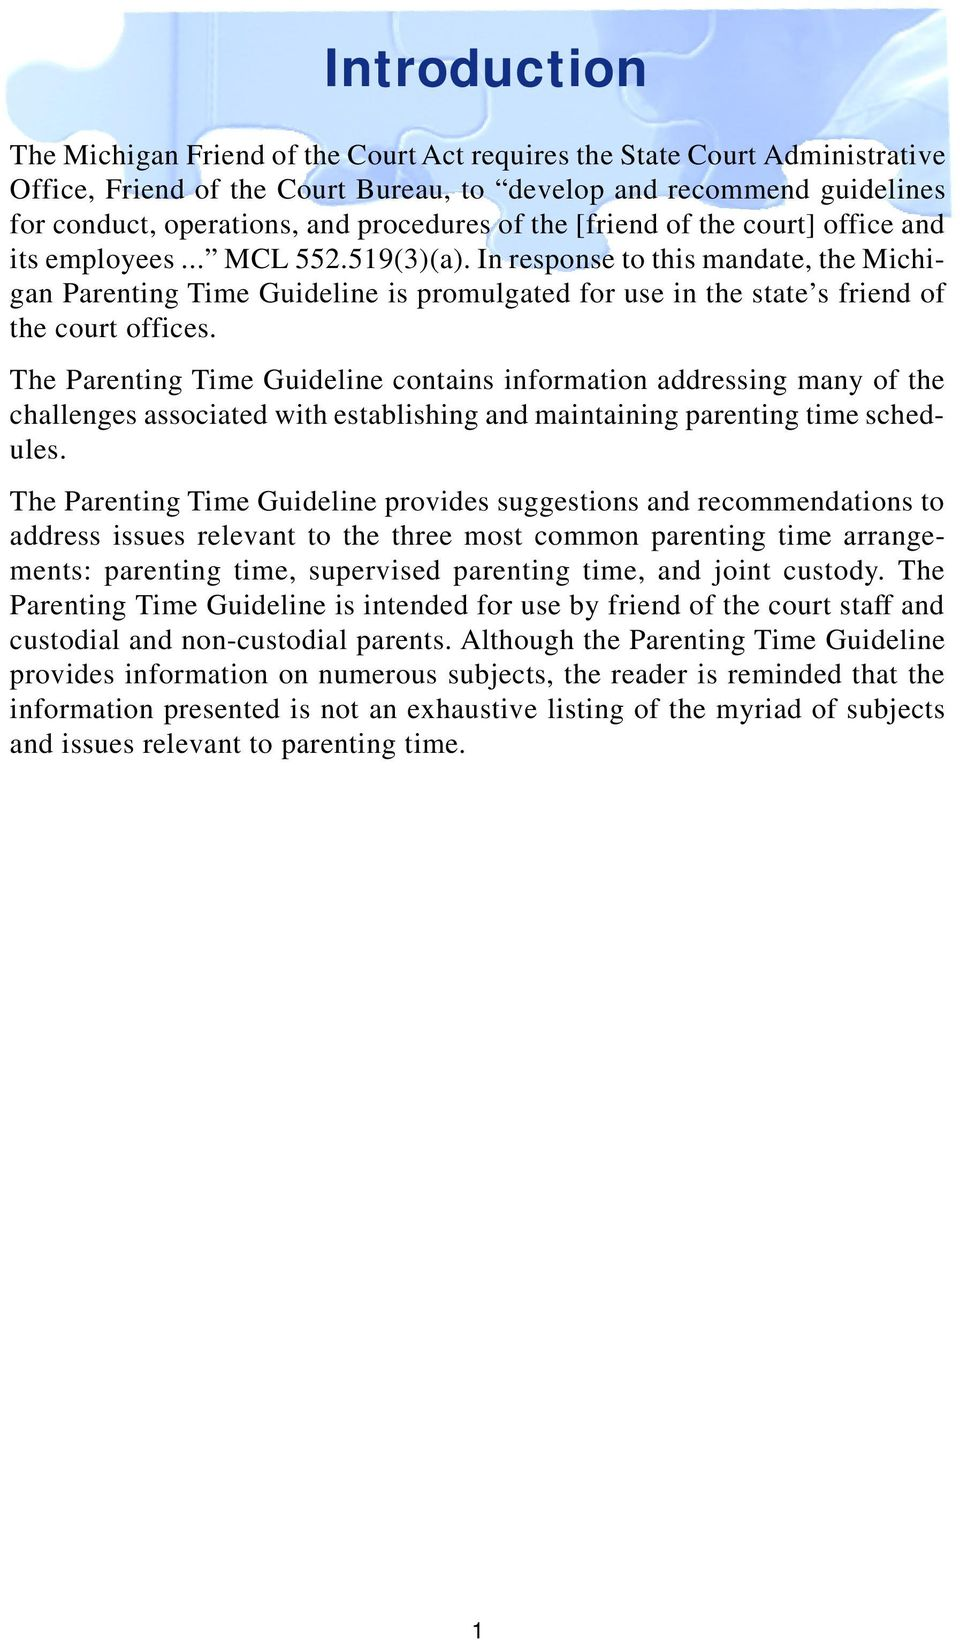 In response to this mandate, the Michigan Parenting Time Guideline is promulgated for use in the state s friend of the court offices.